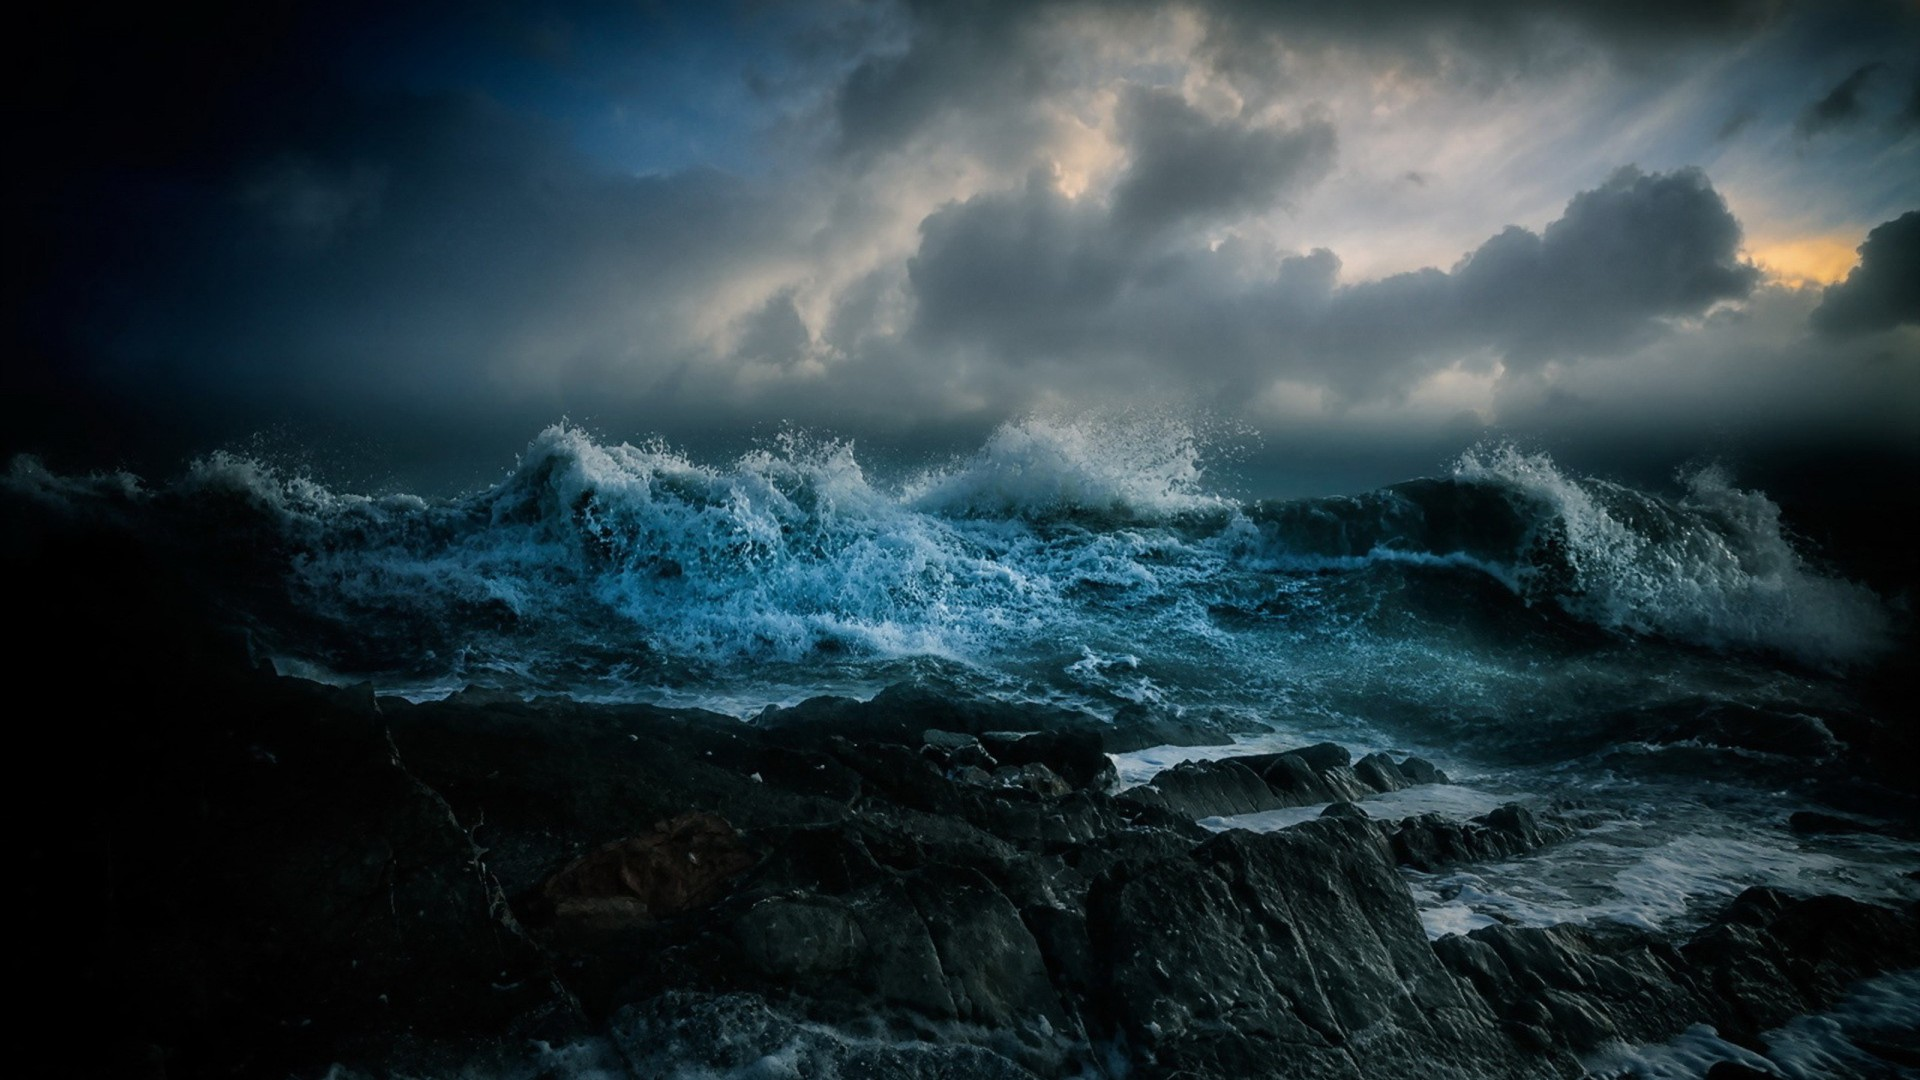 Stormy sea hd wallpaper background image 1920x1080 id 689182 wallpaper abyss - Wave pics wallpaper ...